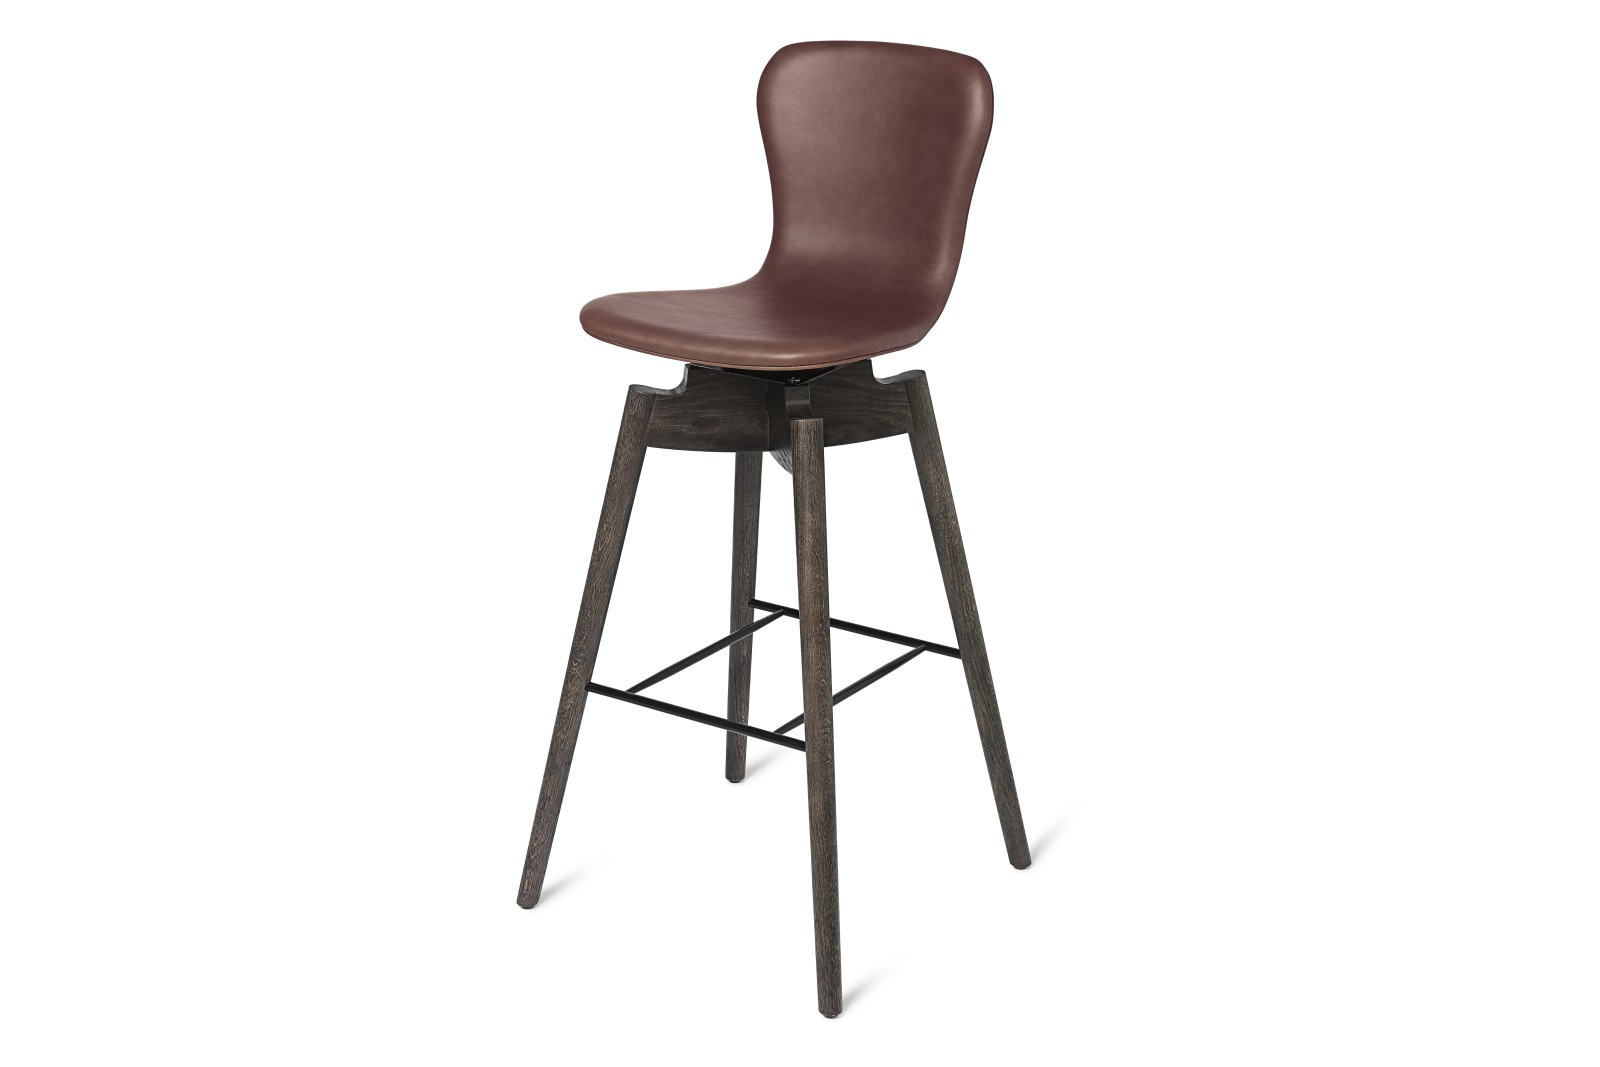 Shell Bar Stool with Swivel Seat Ultra Cognac Leather, 102cm